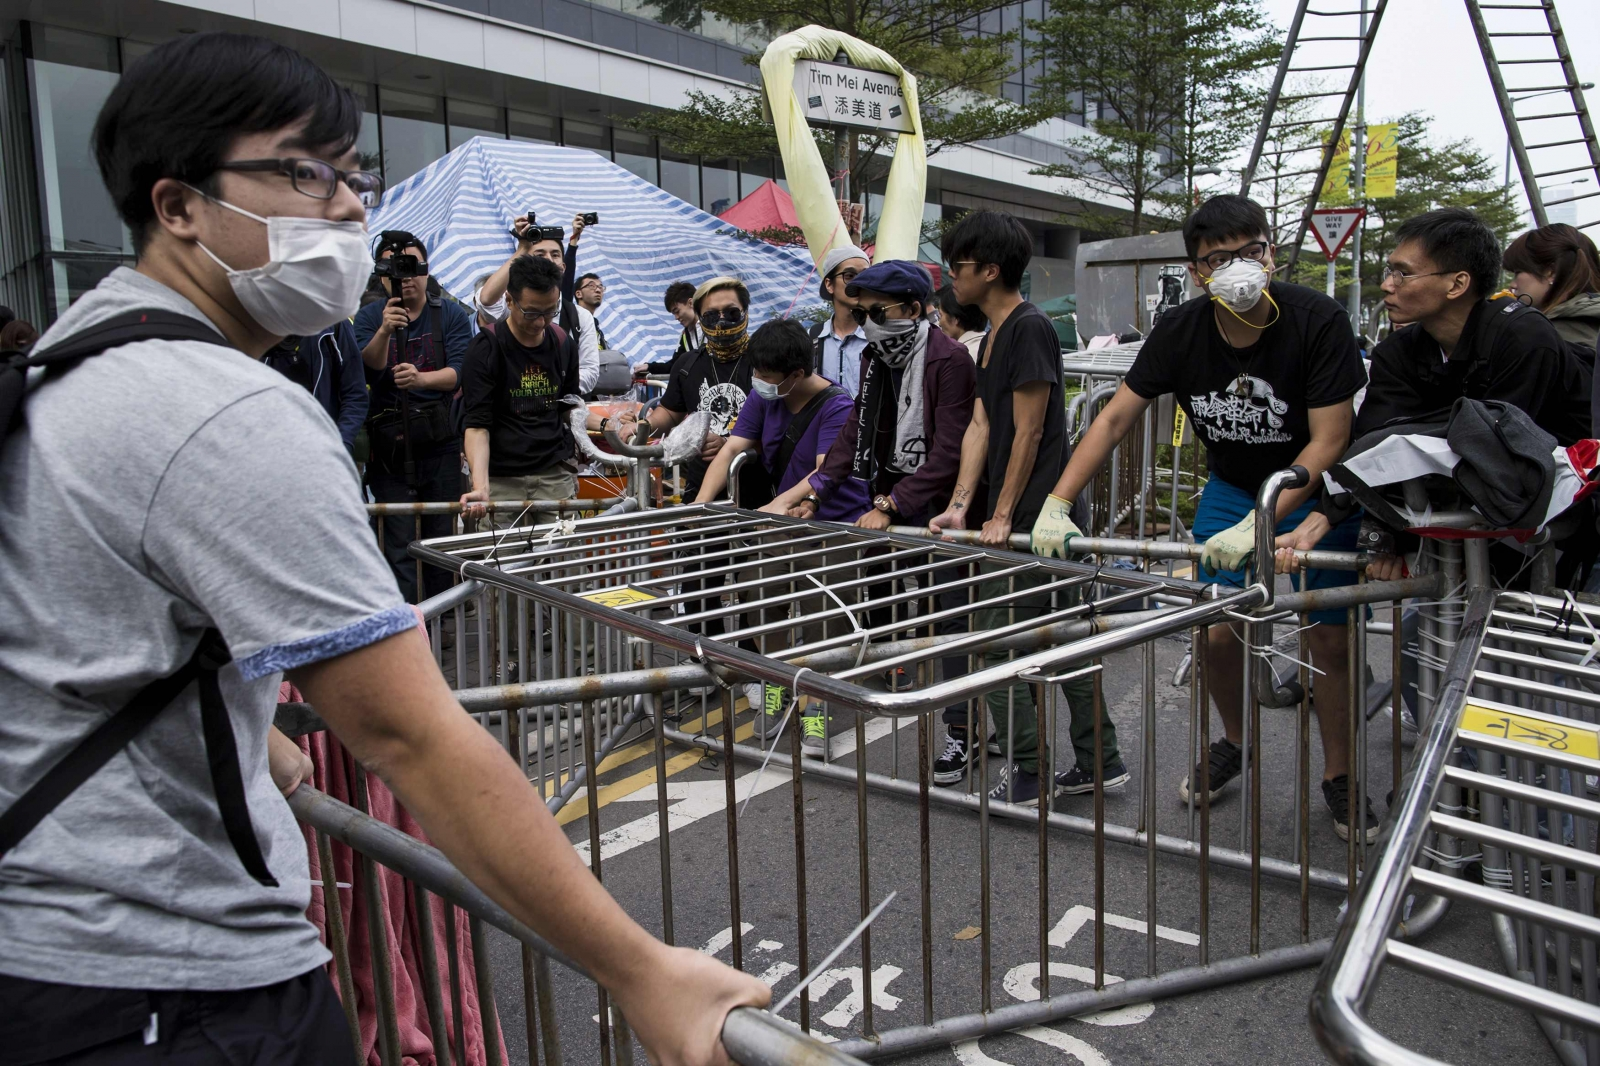 Hong Kong: Pro-Democracy Protestors Break Into City's Legislature